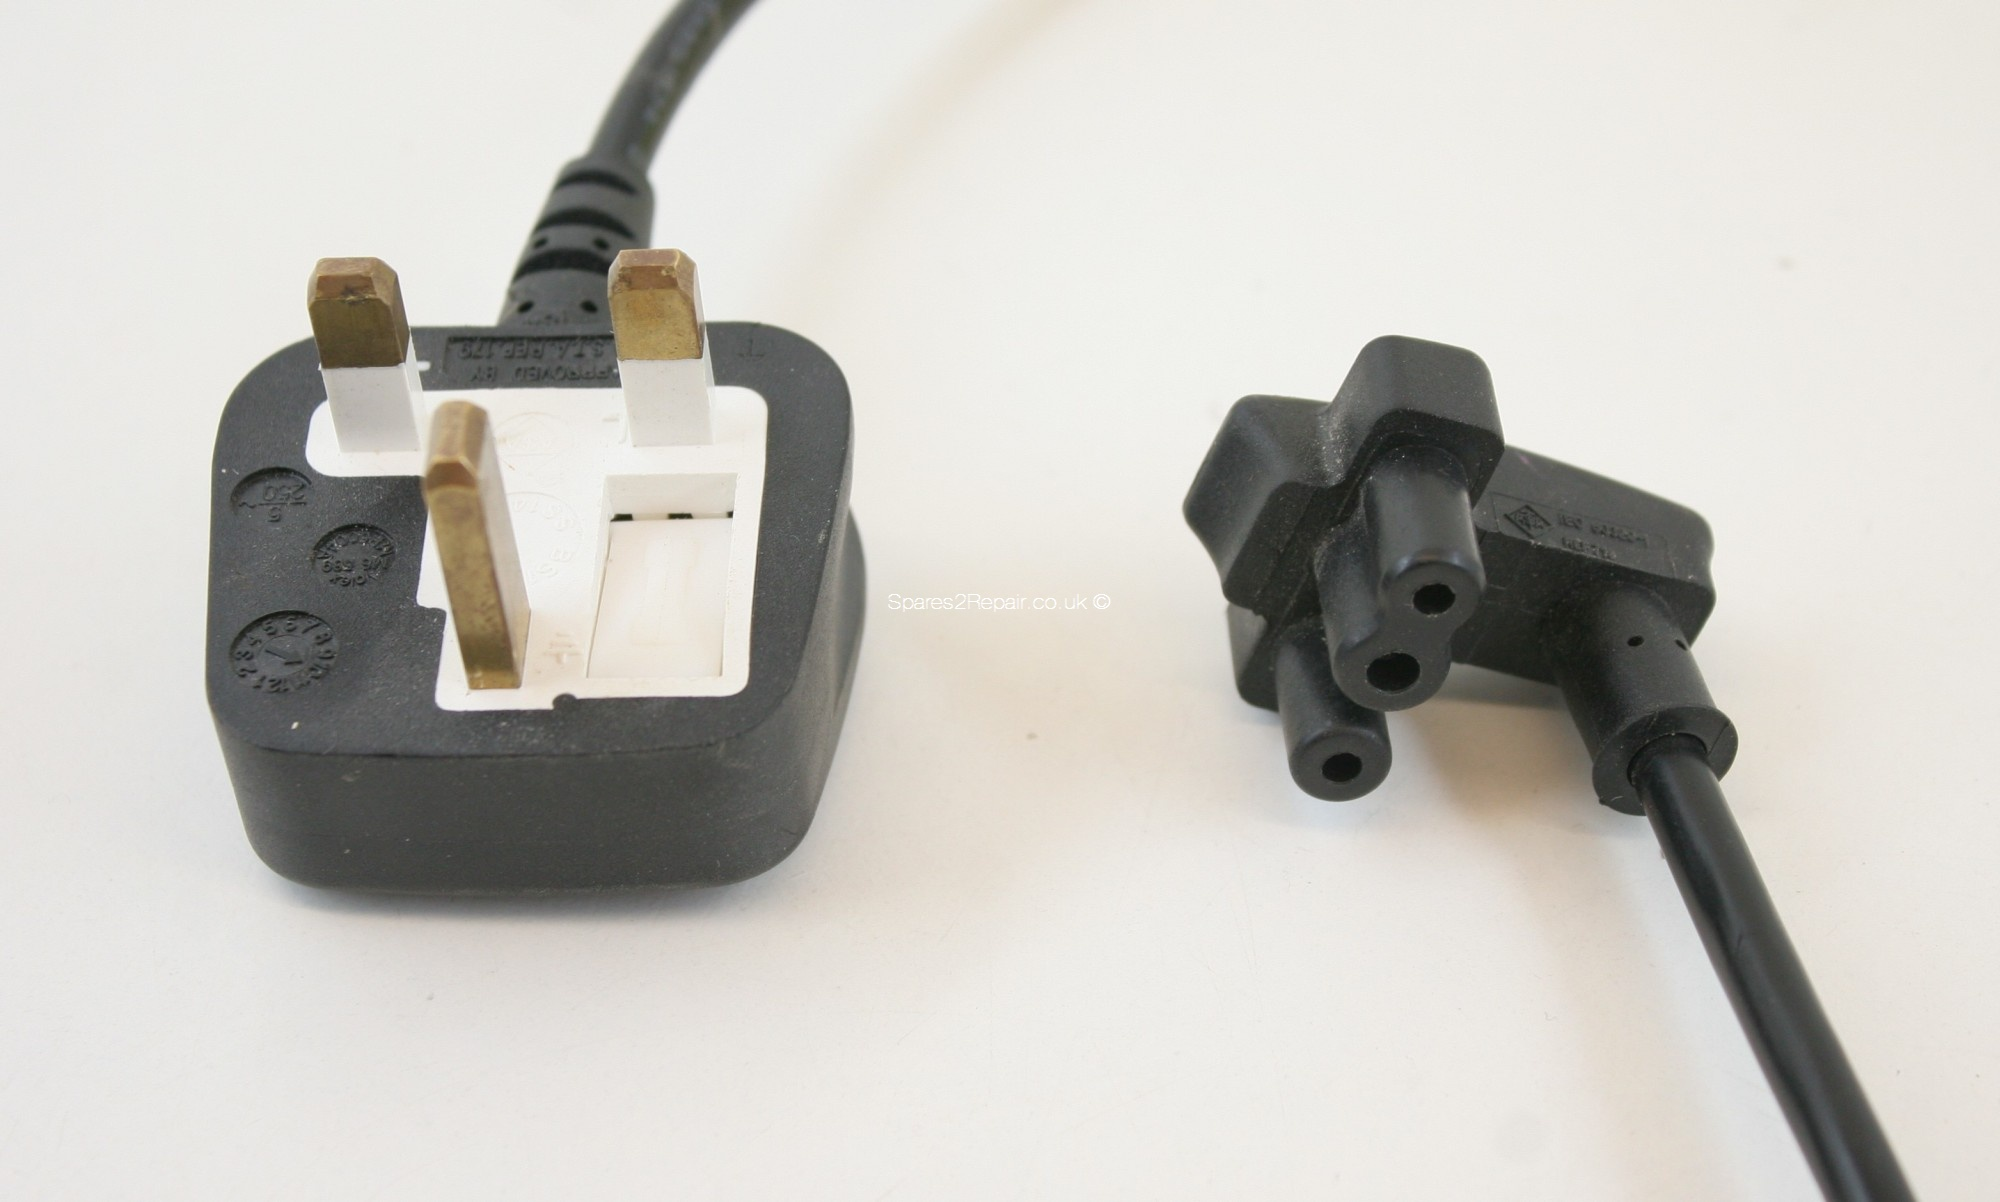 UK Mains Plug to IEC 60320-1 - For Dell Chargers